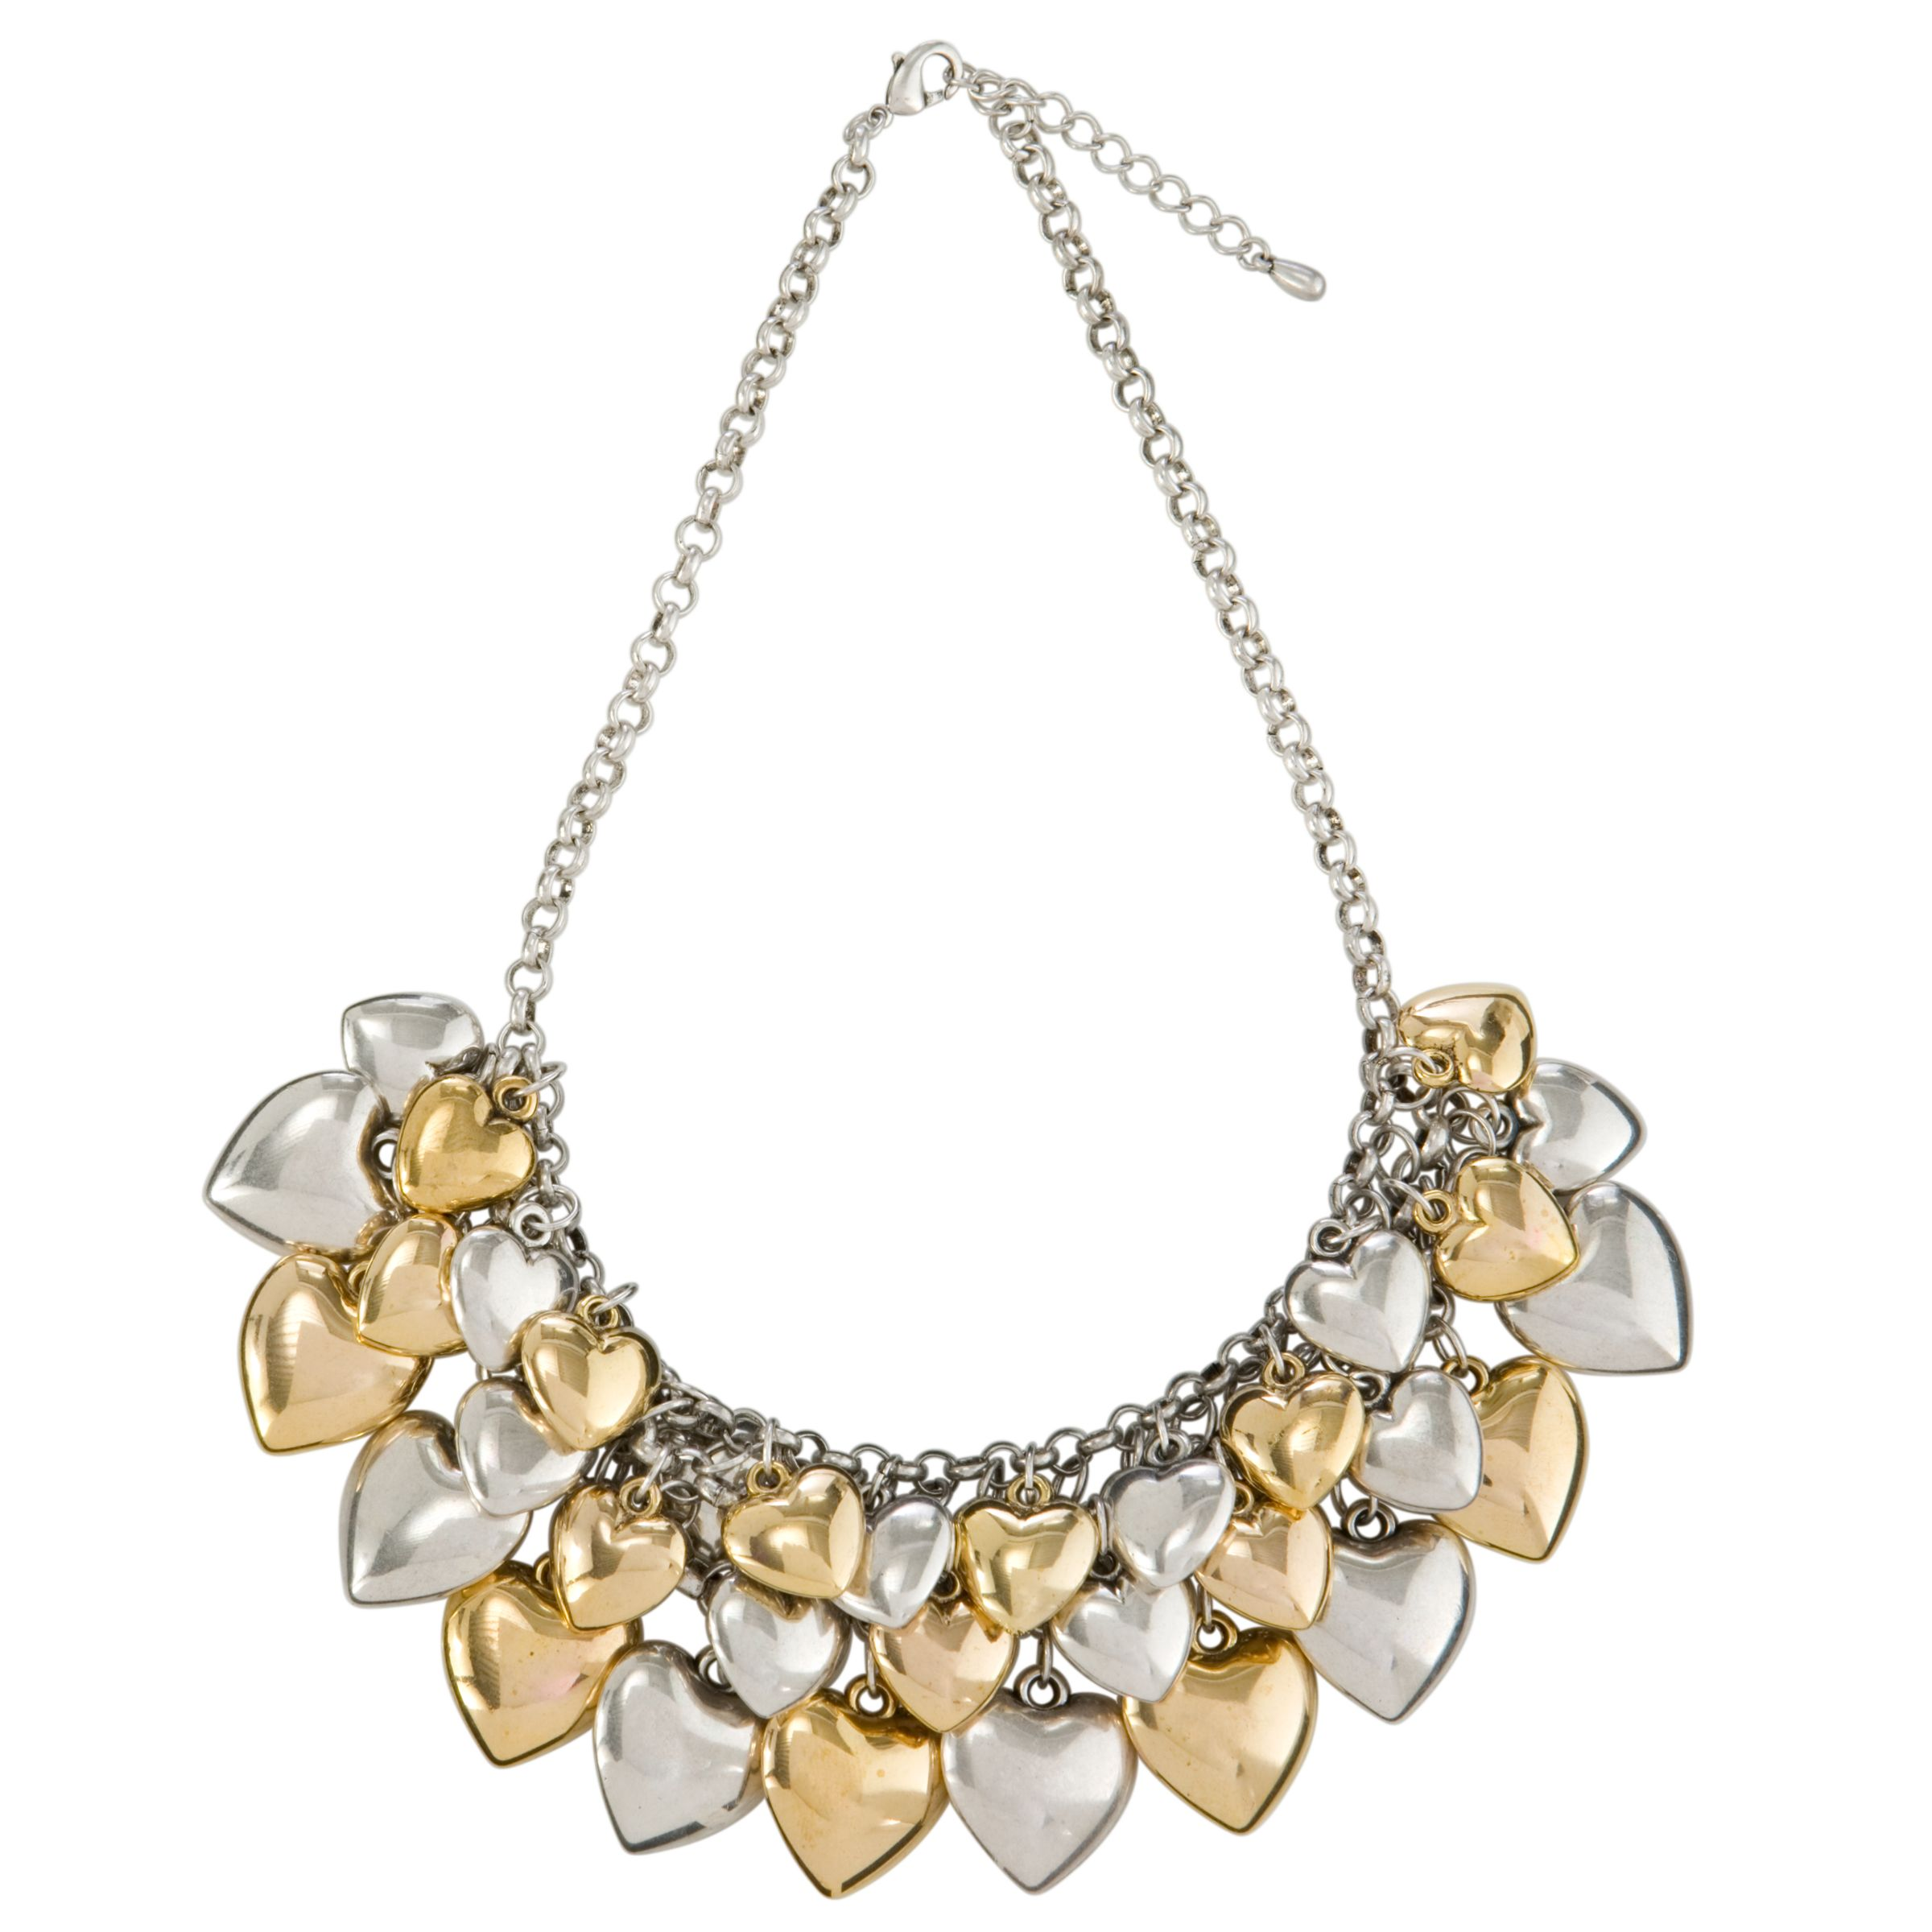 Adele Marie for Two Tone Gold and Silver Plated Multiple Heart Necklace